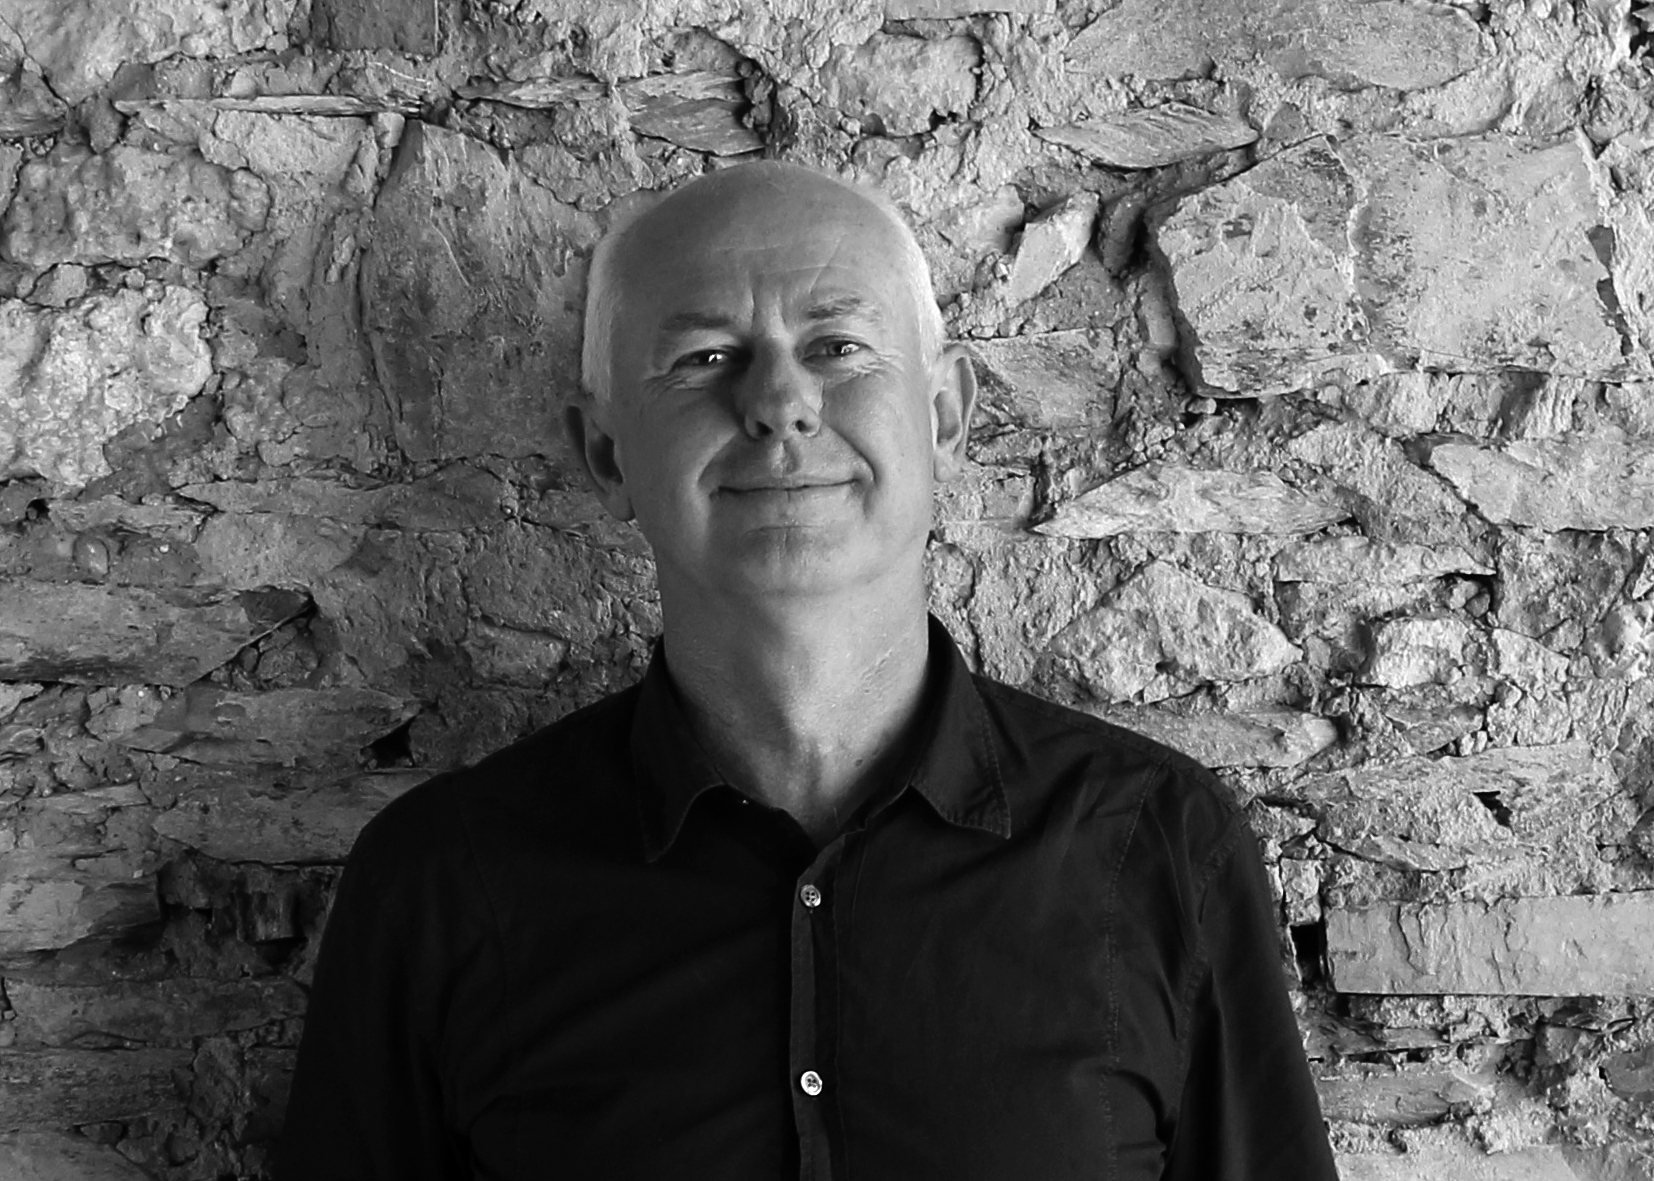 James Hayter is the president of IFLA as well as the founder of Oxigen landscape architects in Australia.